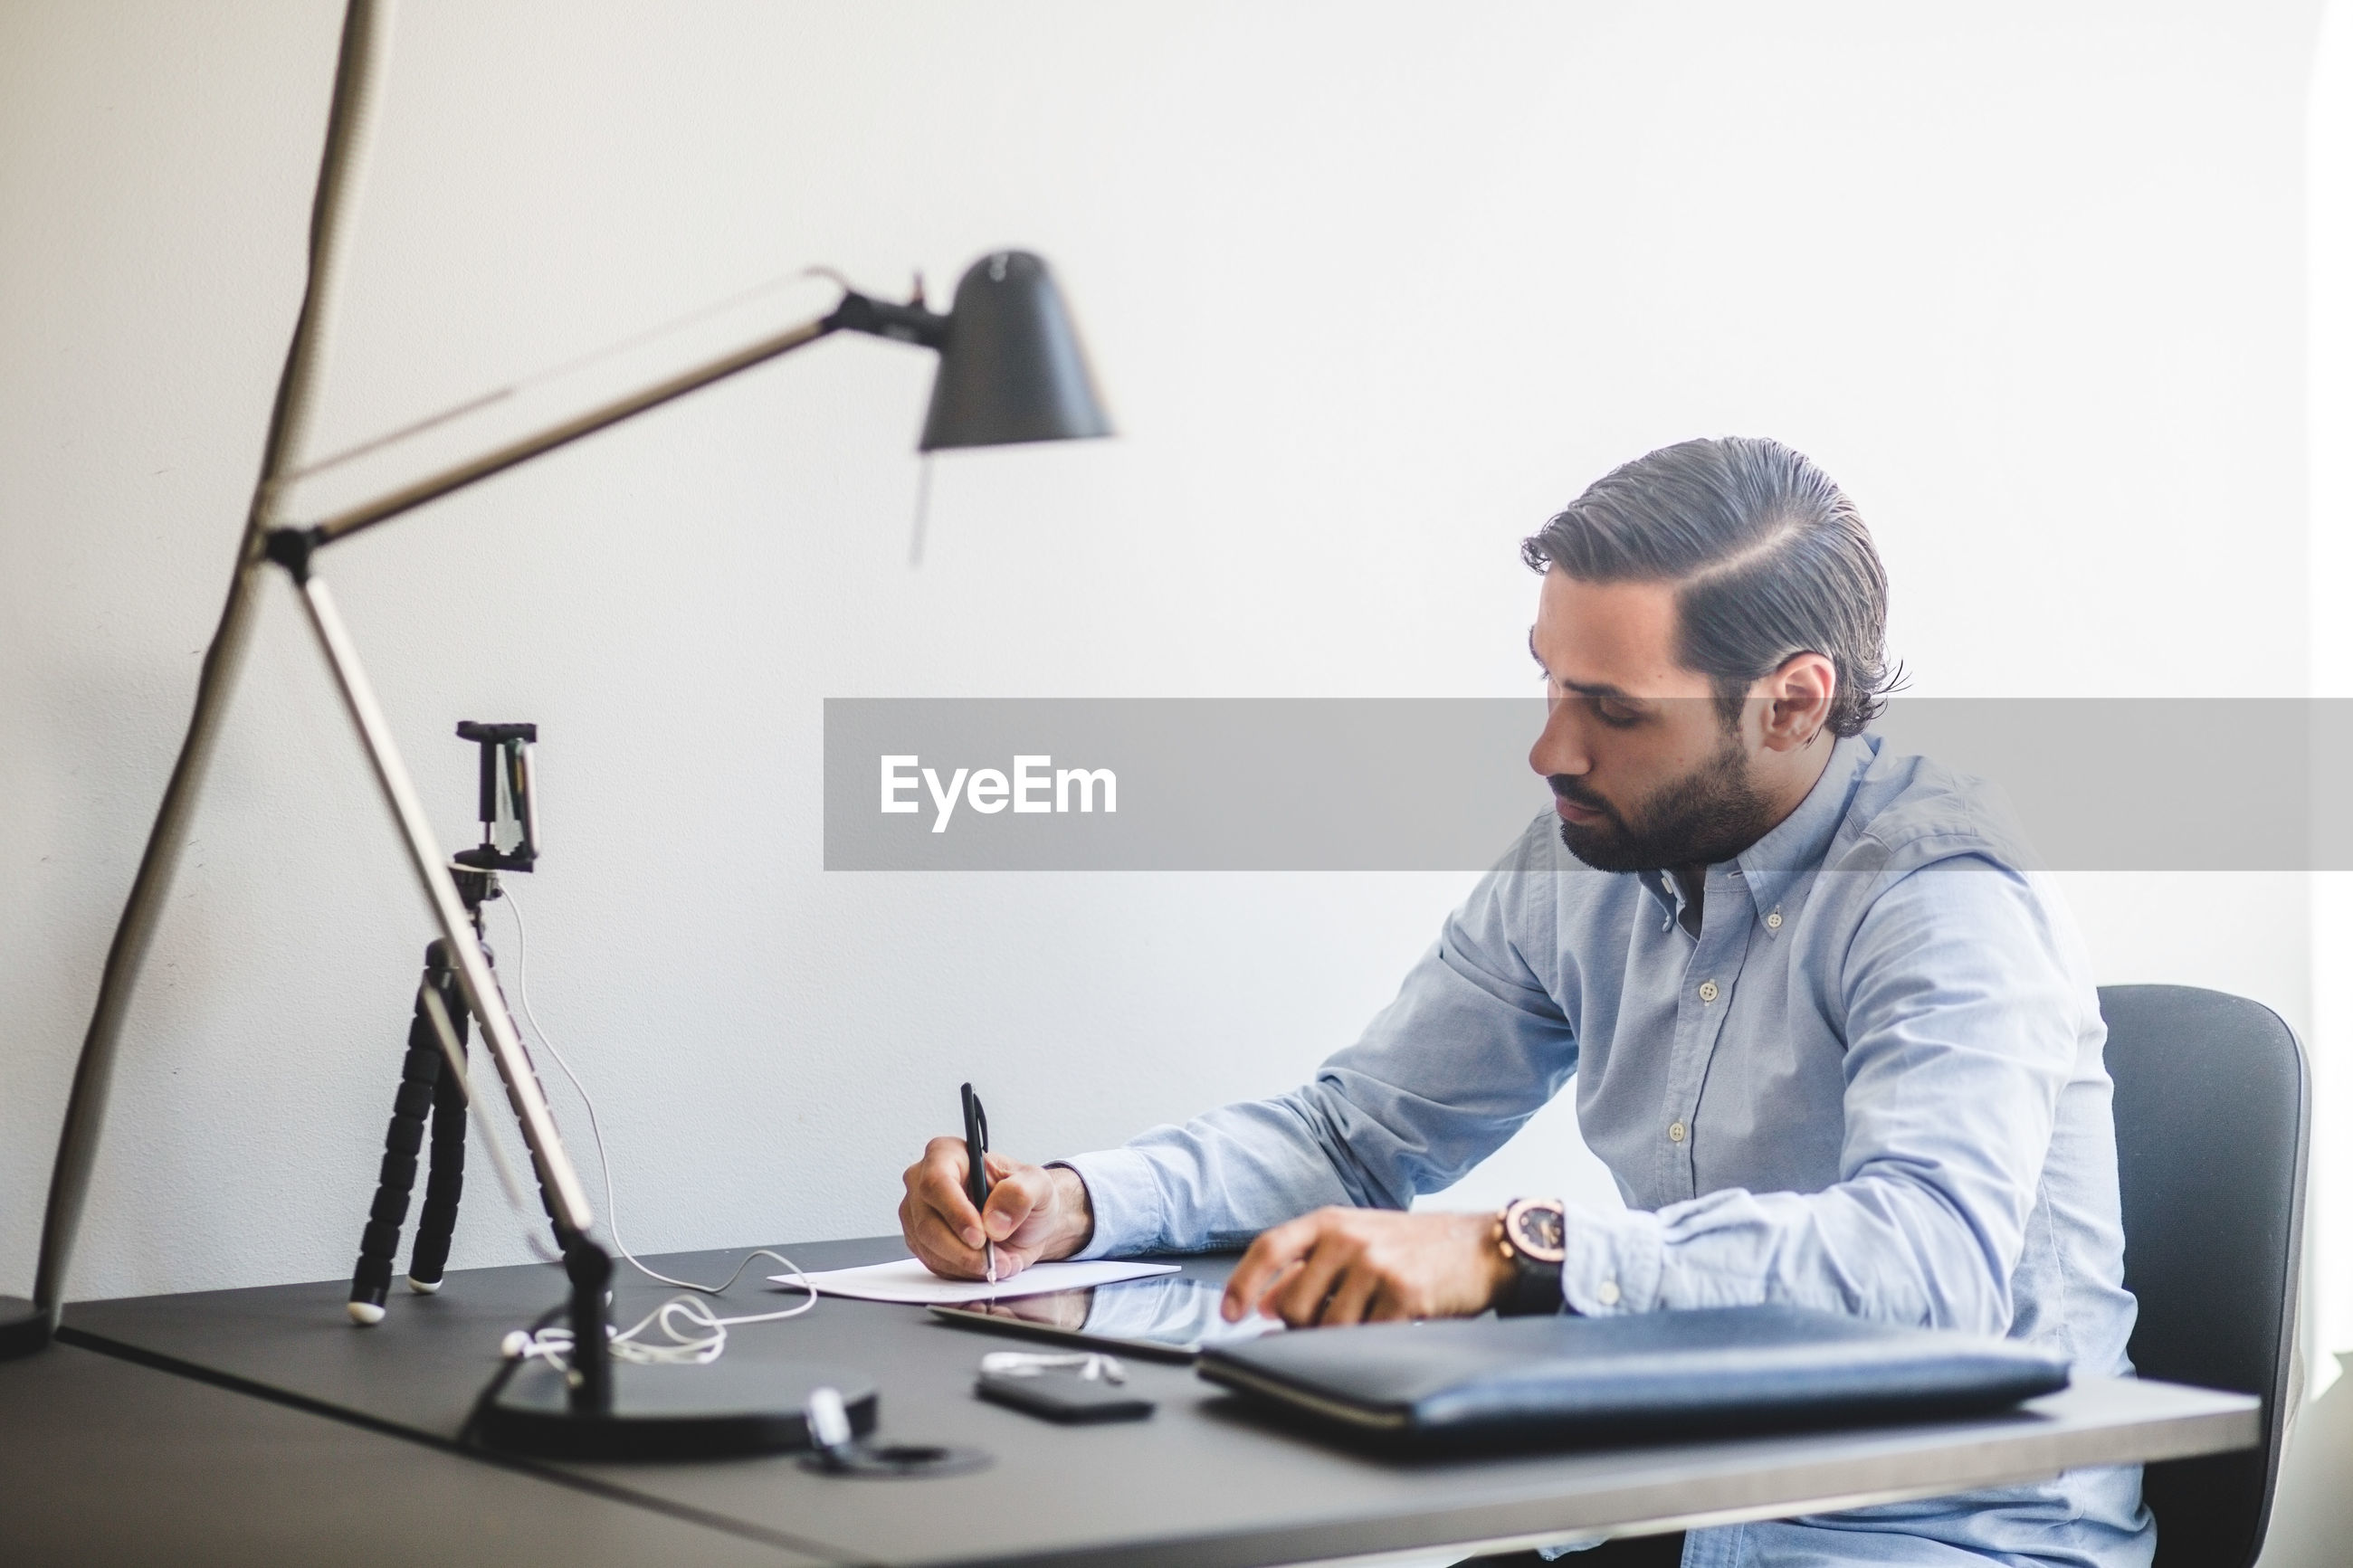 SIDE VIEW OF MAN WORKING ON TABLE IN OFFICE